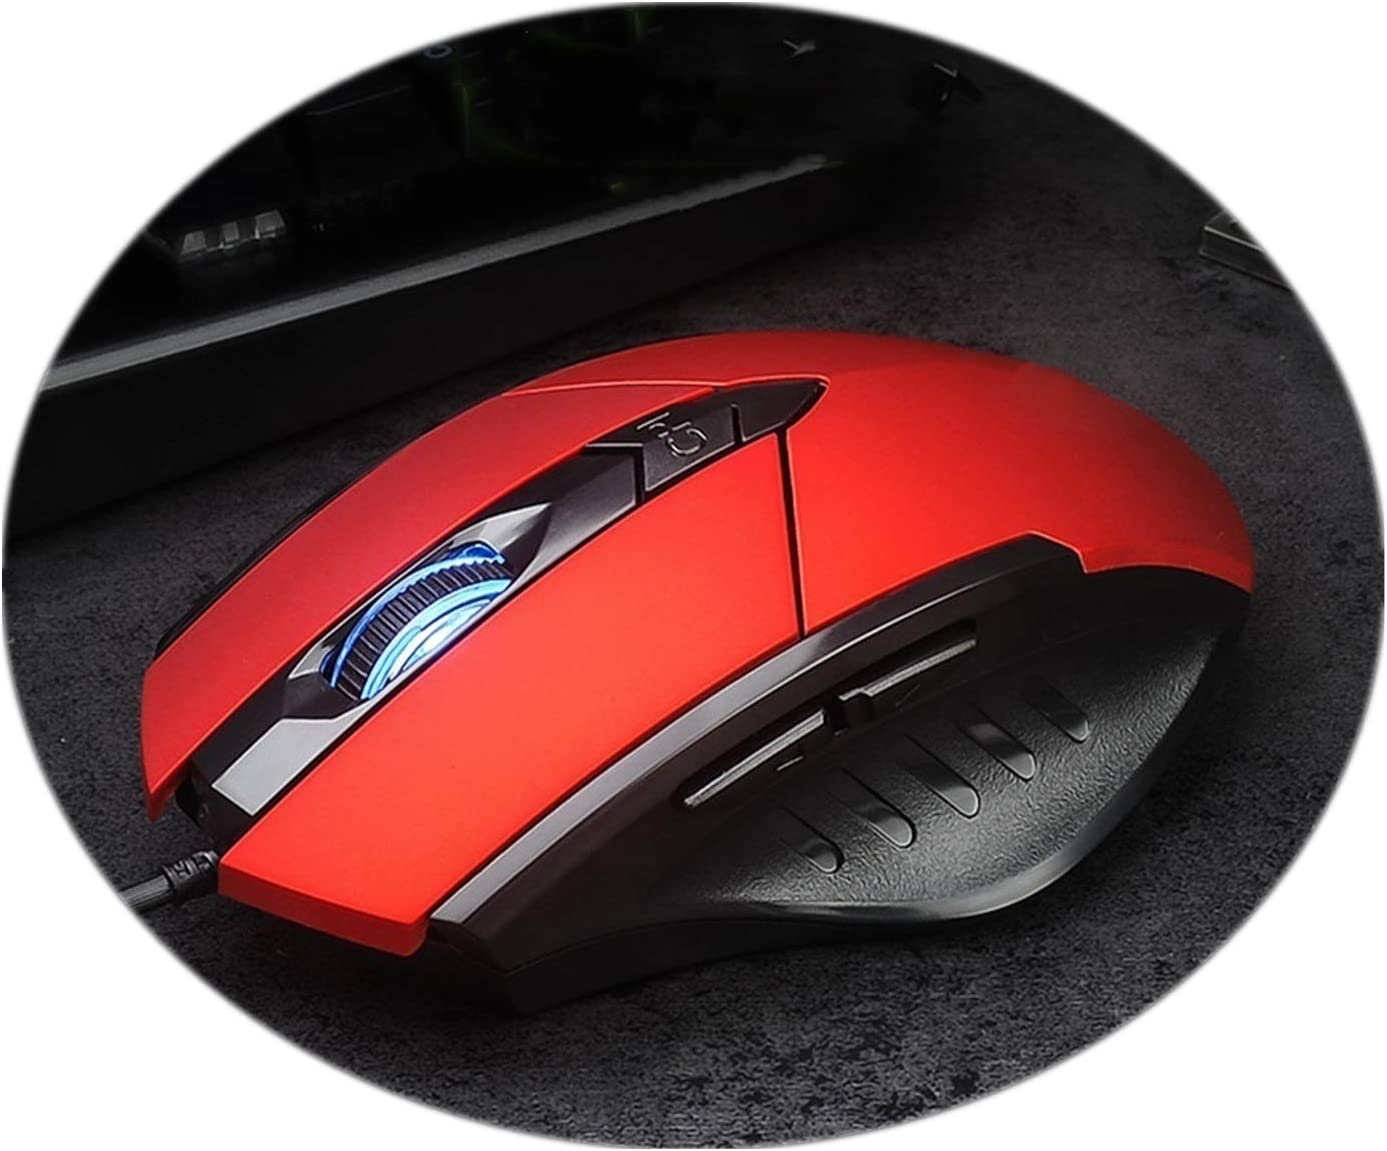 Mouse Wired Game Mouse Gaming Mouse Mute Mouse Red